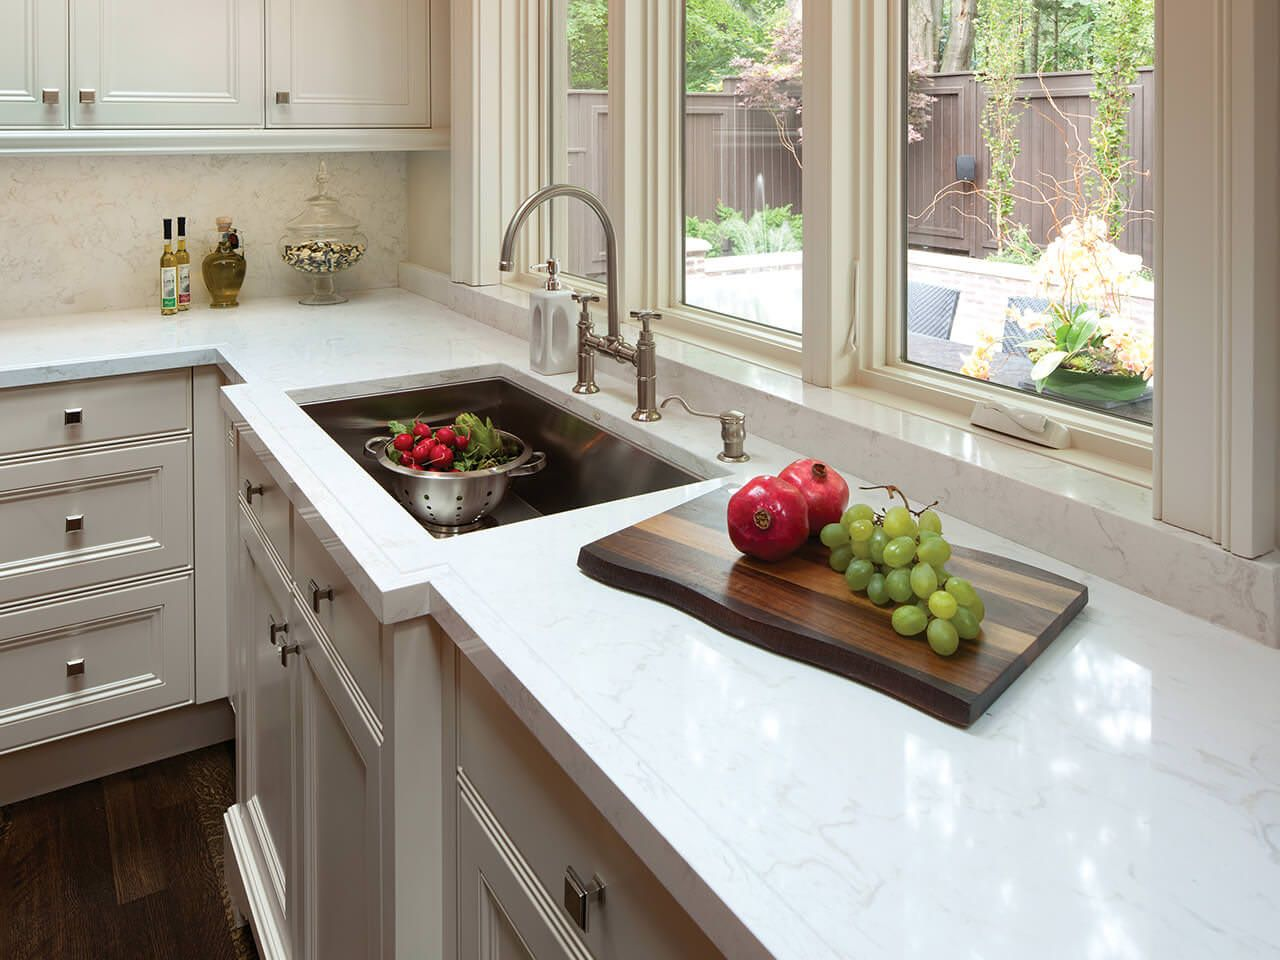 Torquay Cambria Quartz Countertops Cost Reviews Replacing